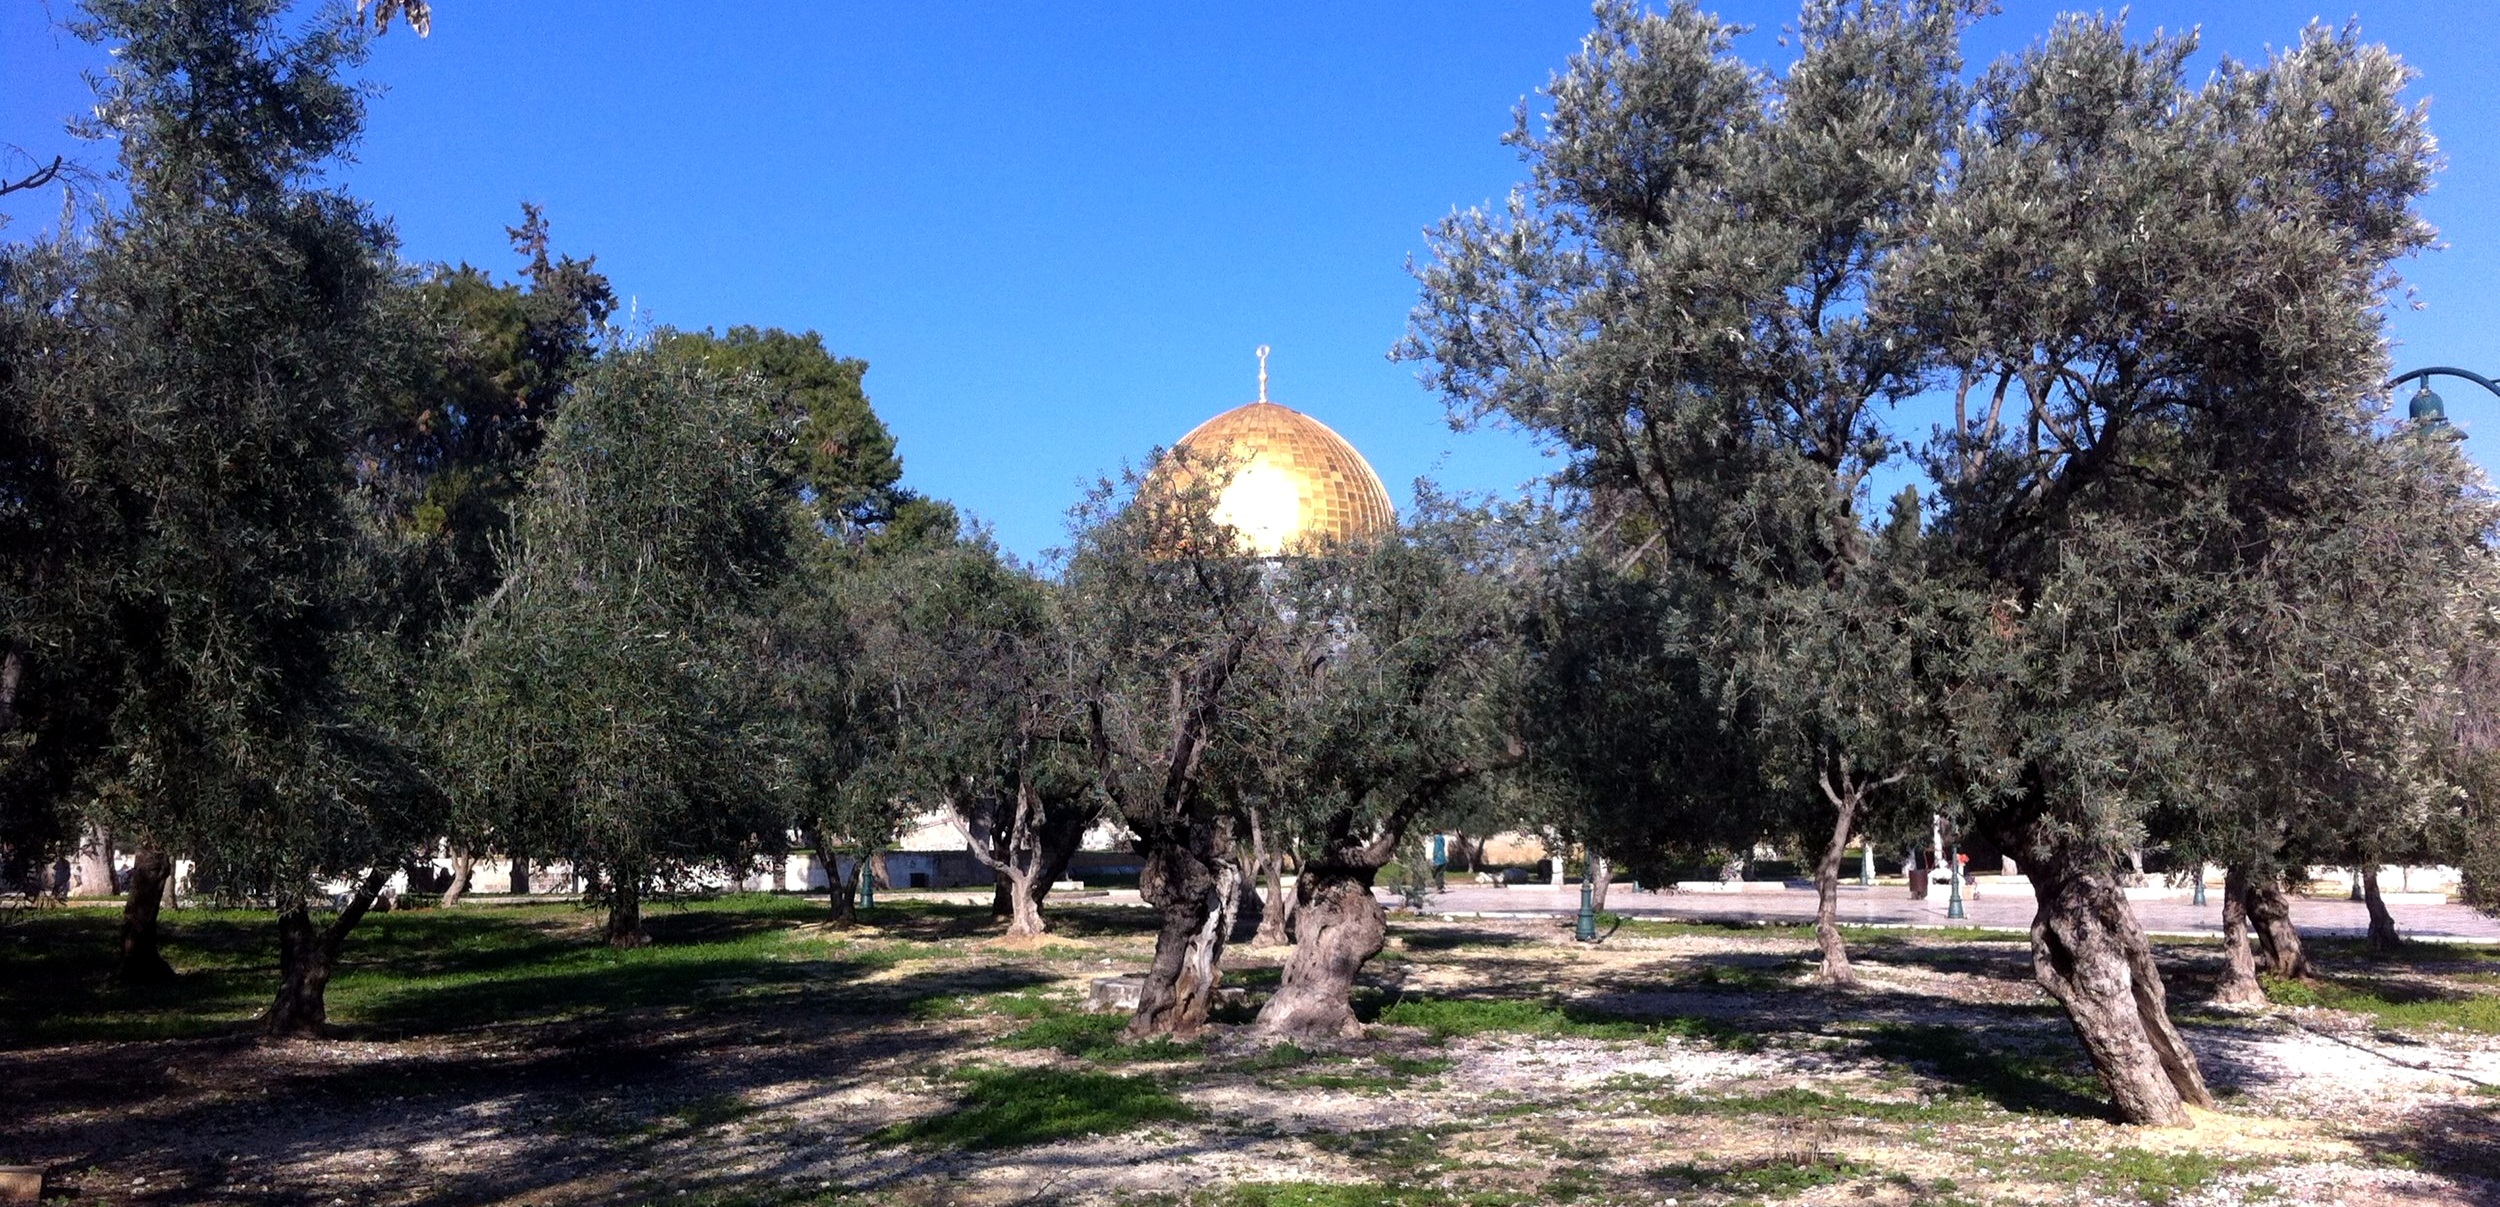 Wind between trees. Dome of the Rock, Haram asch-Scharif/Temple mount, Jerusalem, Israel, 2015.